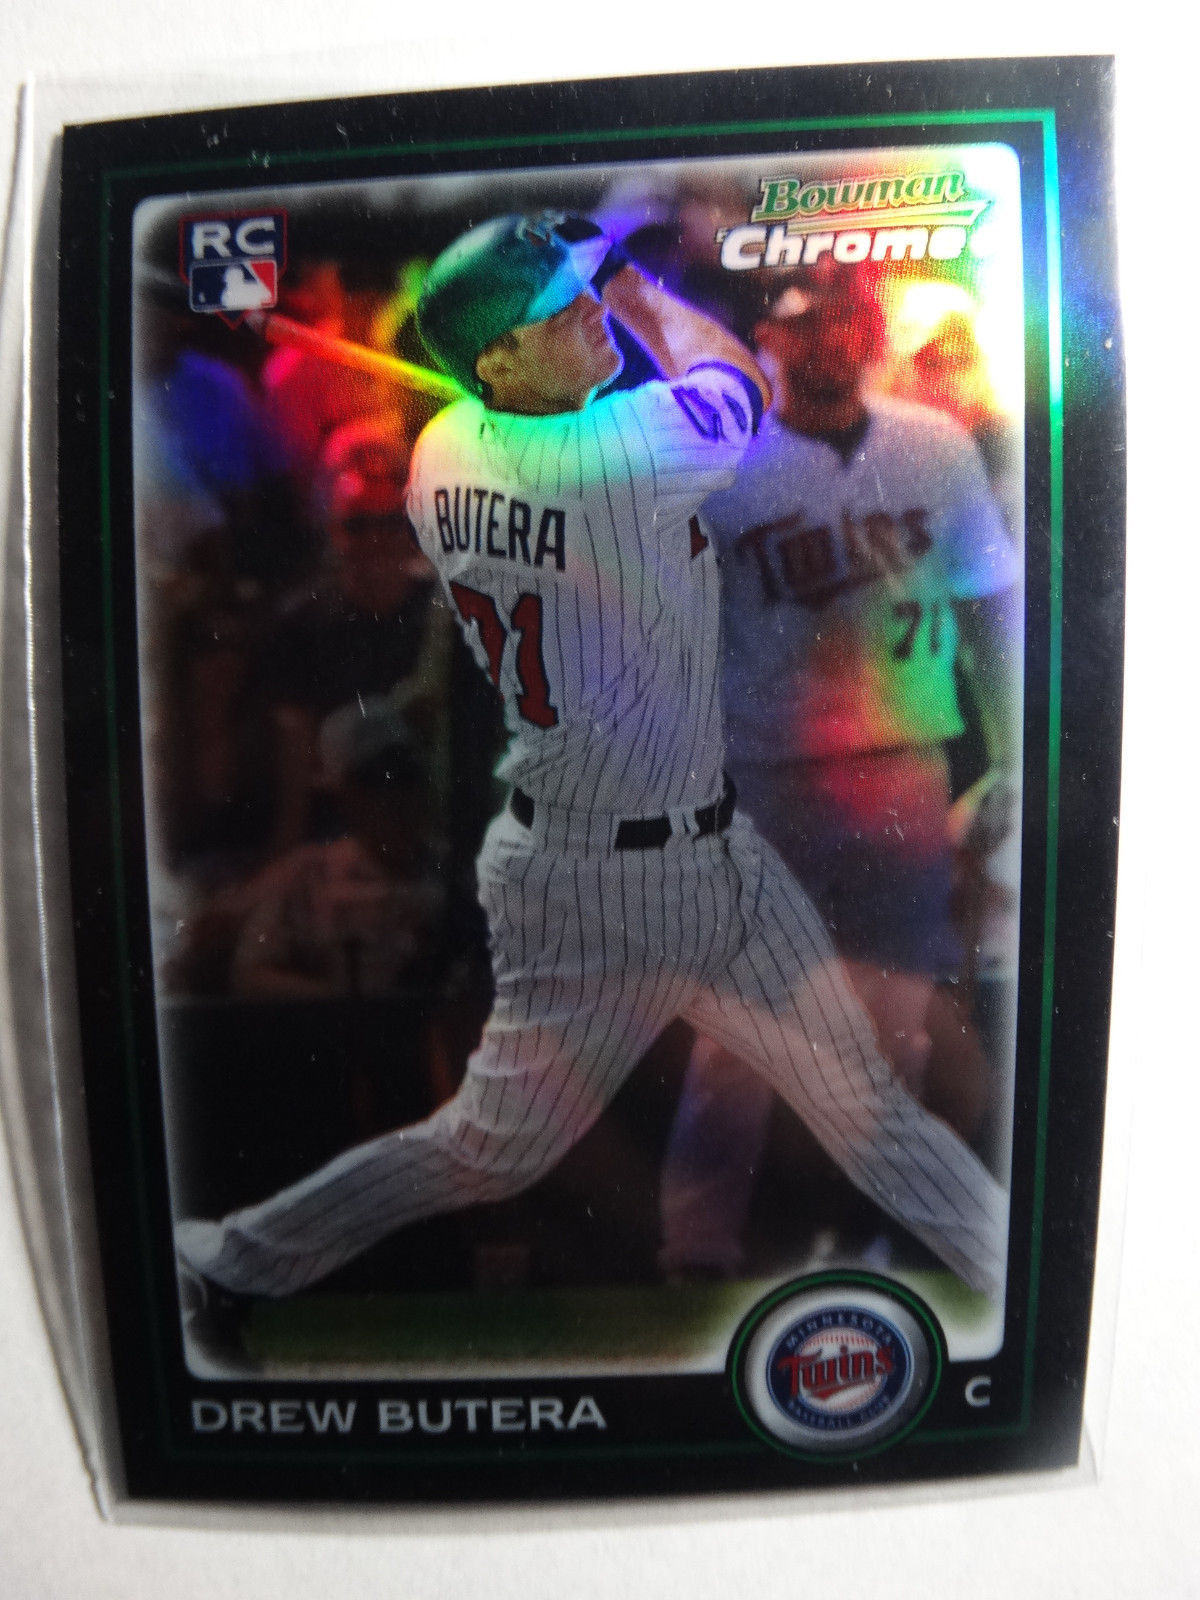 Primary image for 2010 Bowman Chrome #181 Drew Butera Minnesota Twins Refractor Baseball RC Card